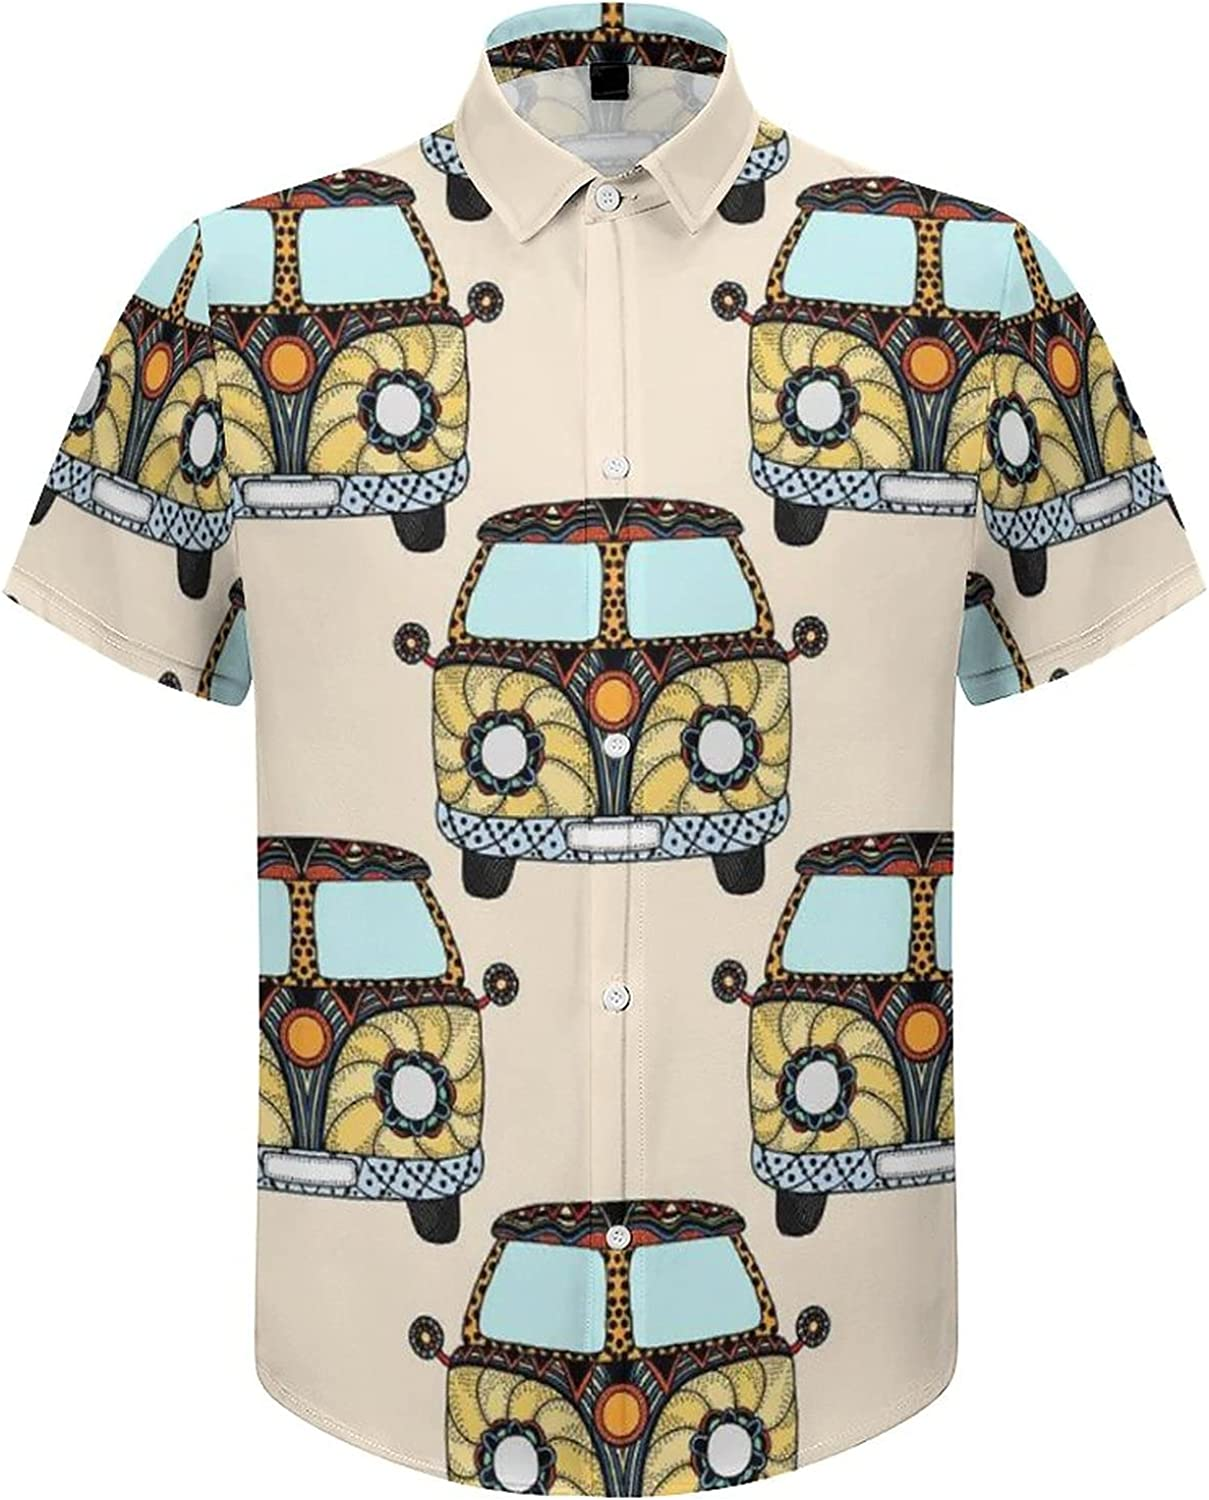 Men's Regular-Fit Short-Sleeve Printed Party Holiday Shirt Happy Peace Bus Car